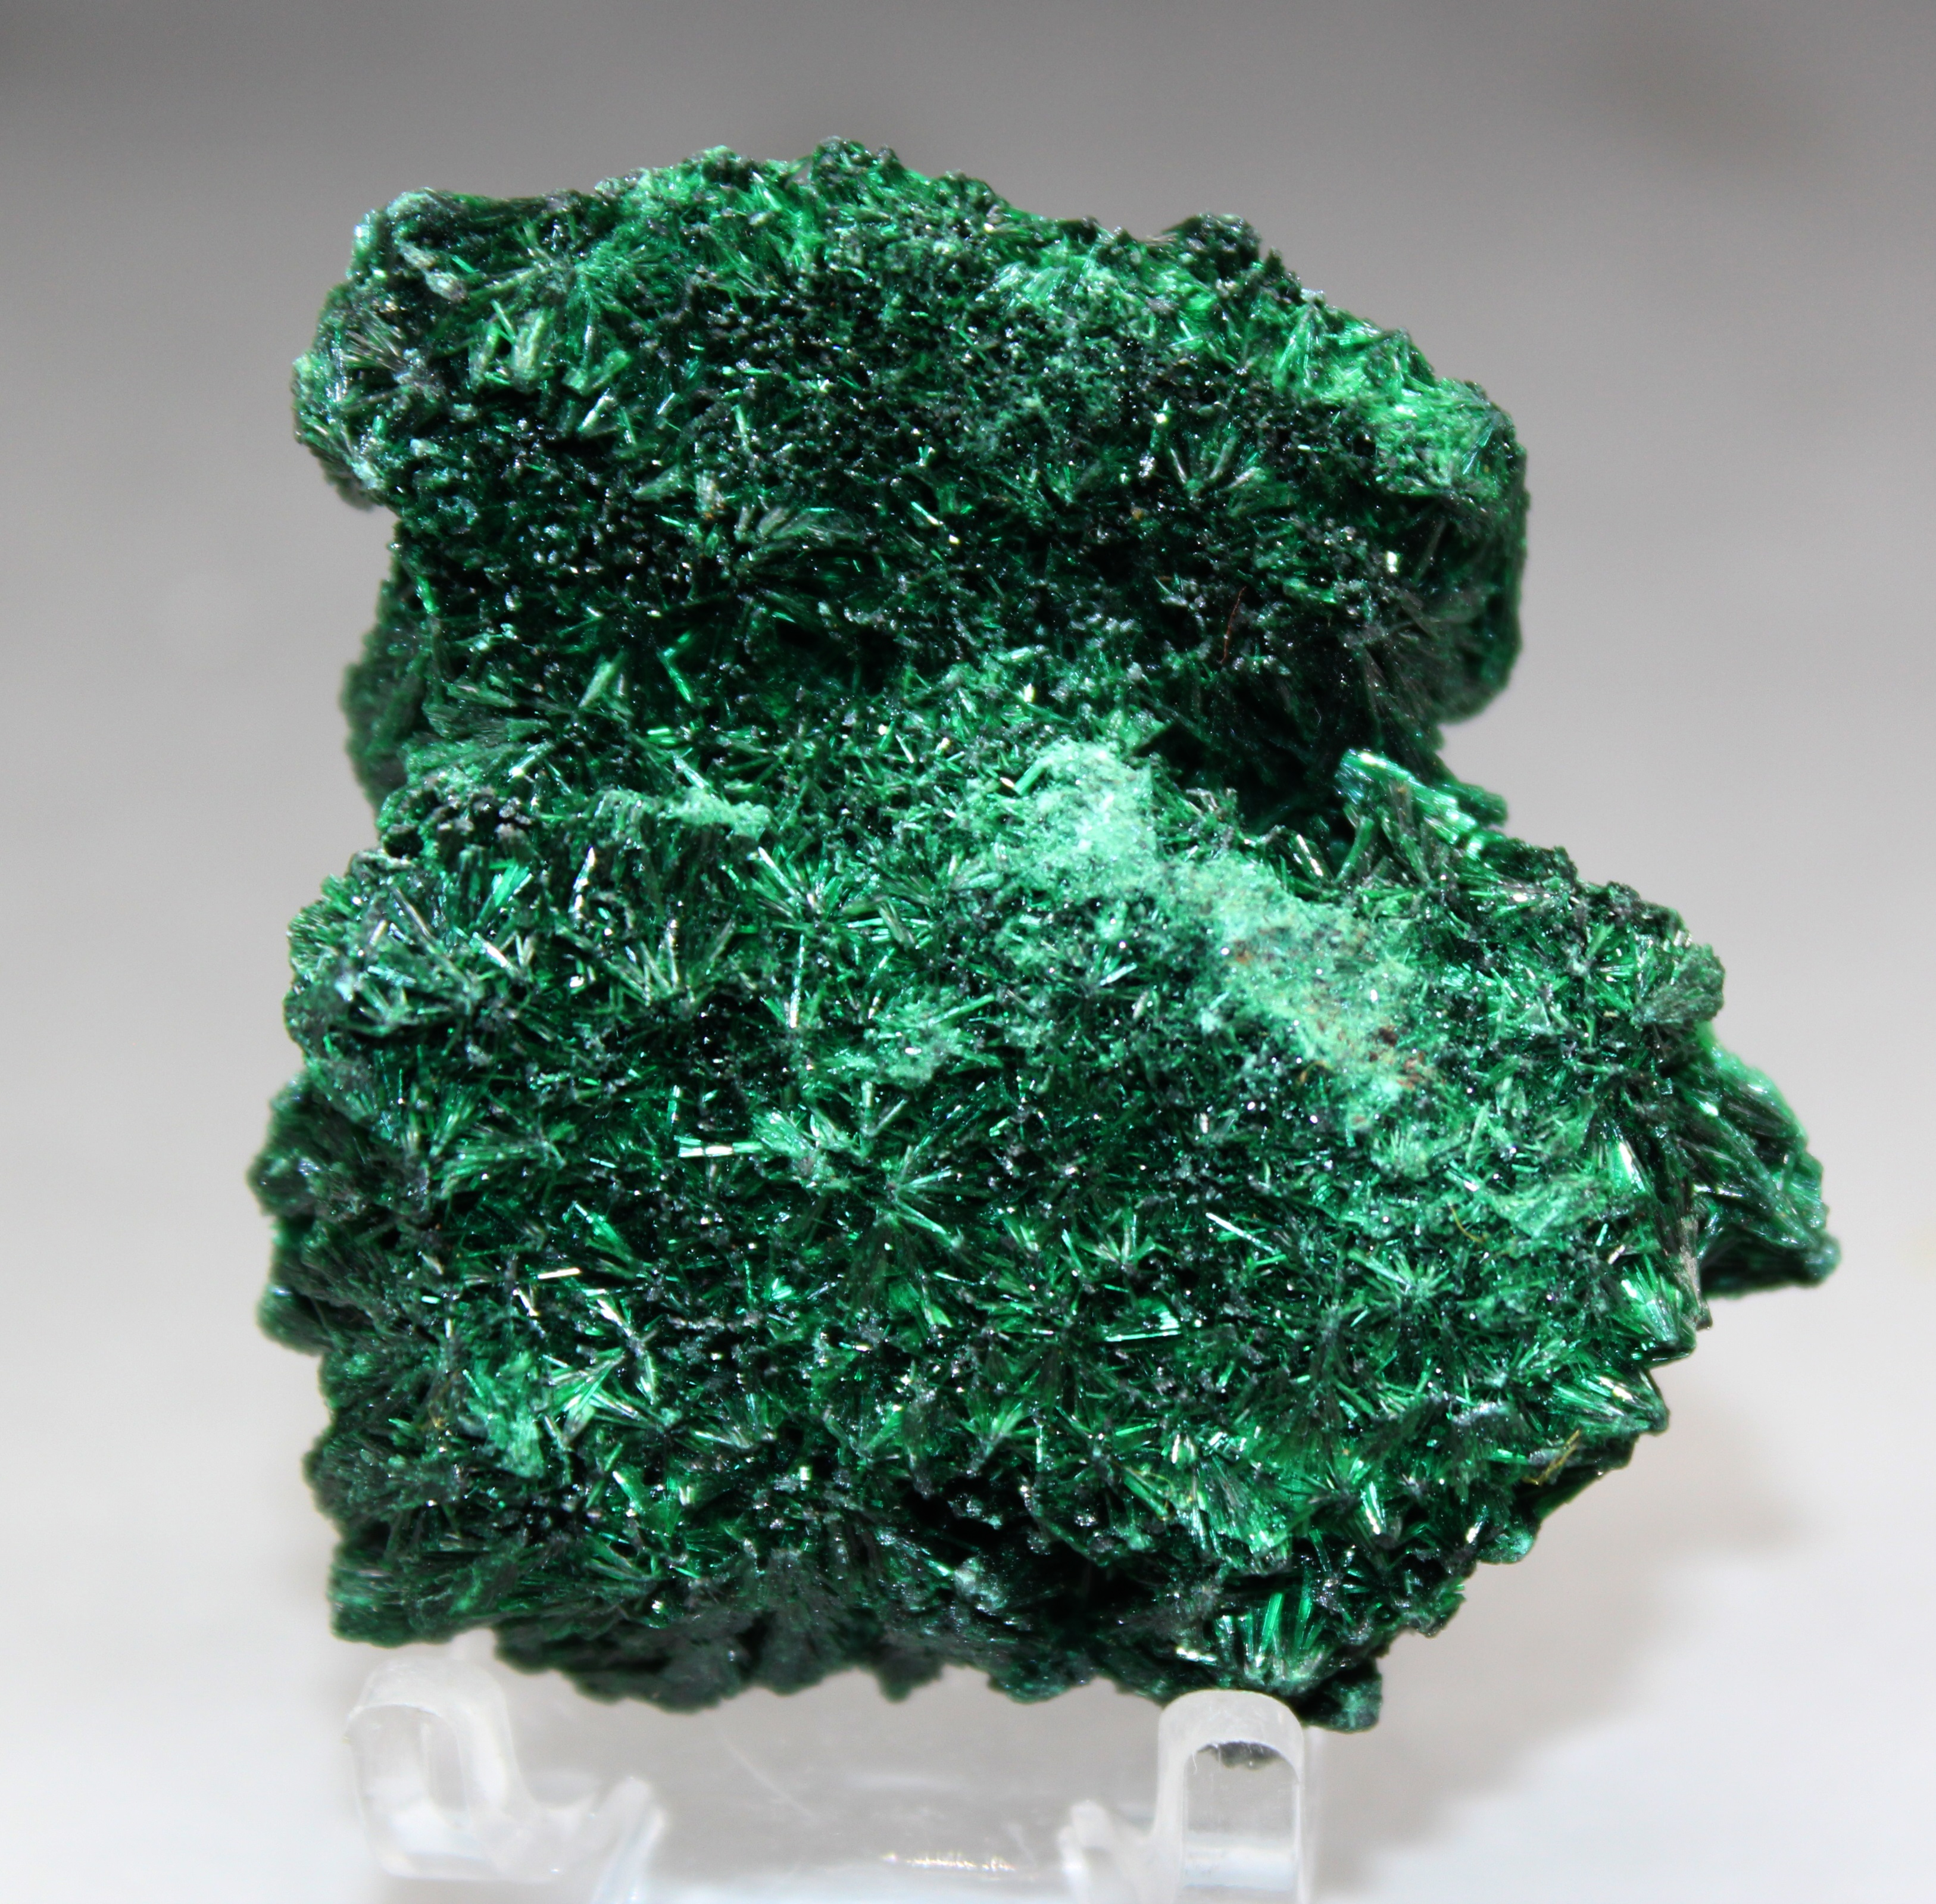 55g Natural rare acicular malachite mineral specimen green stone crystal teaching specimen collection